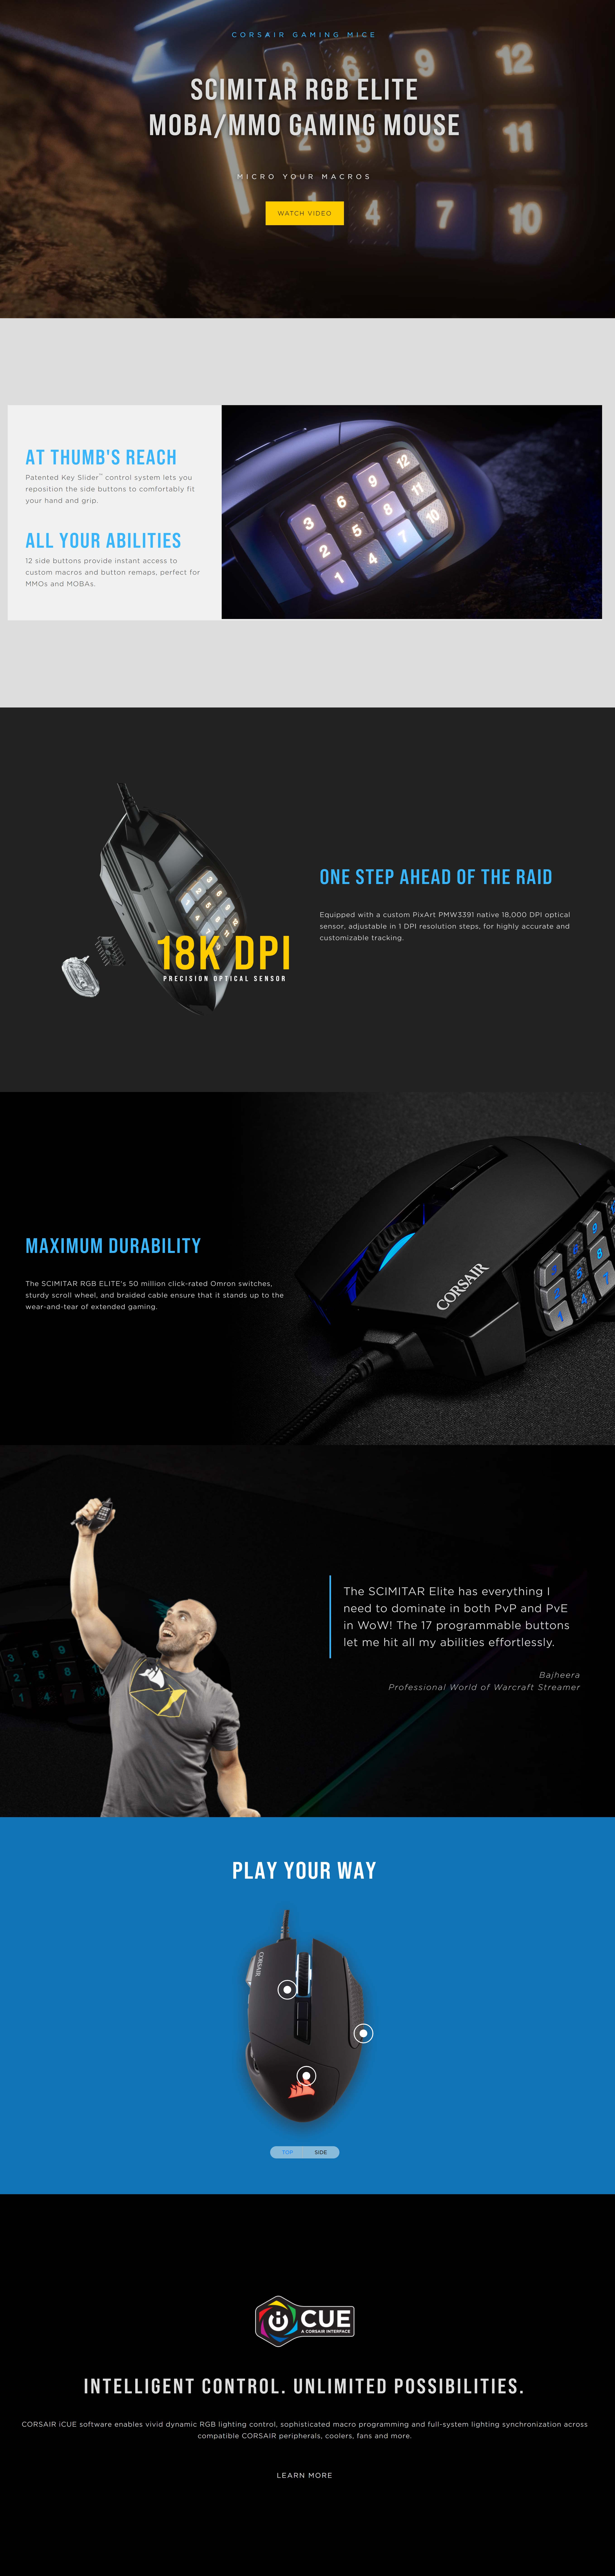 screencapture-corsair-us-en-Categories-Products-Gaming-Mice-MMO-Role-Play-Mice-SCIMITAR-RGB-ELITE-Optical-MOBA-MMO-Gaming-Mouse-p-CH-9304211-NA-2020-02-03-16_16_13.jpg